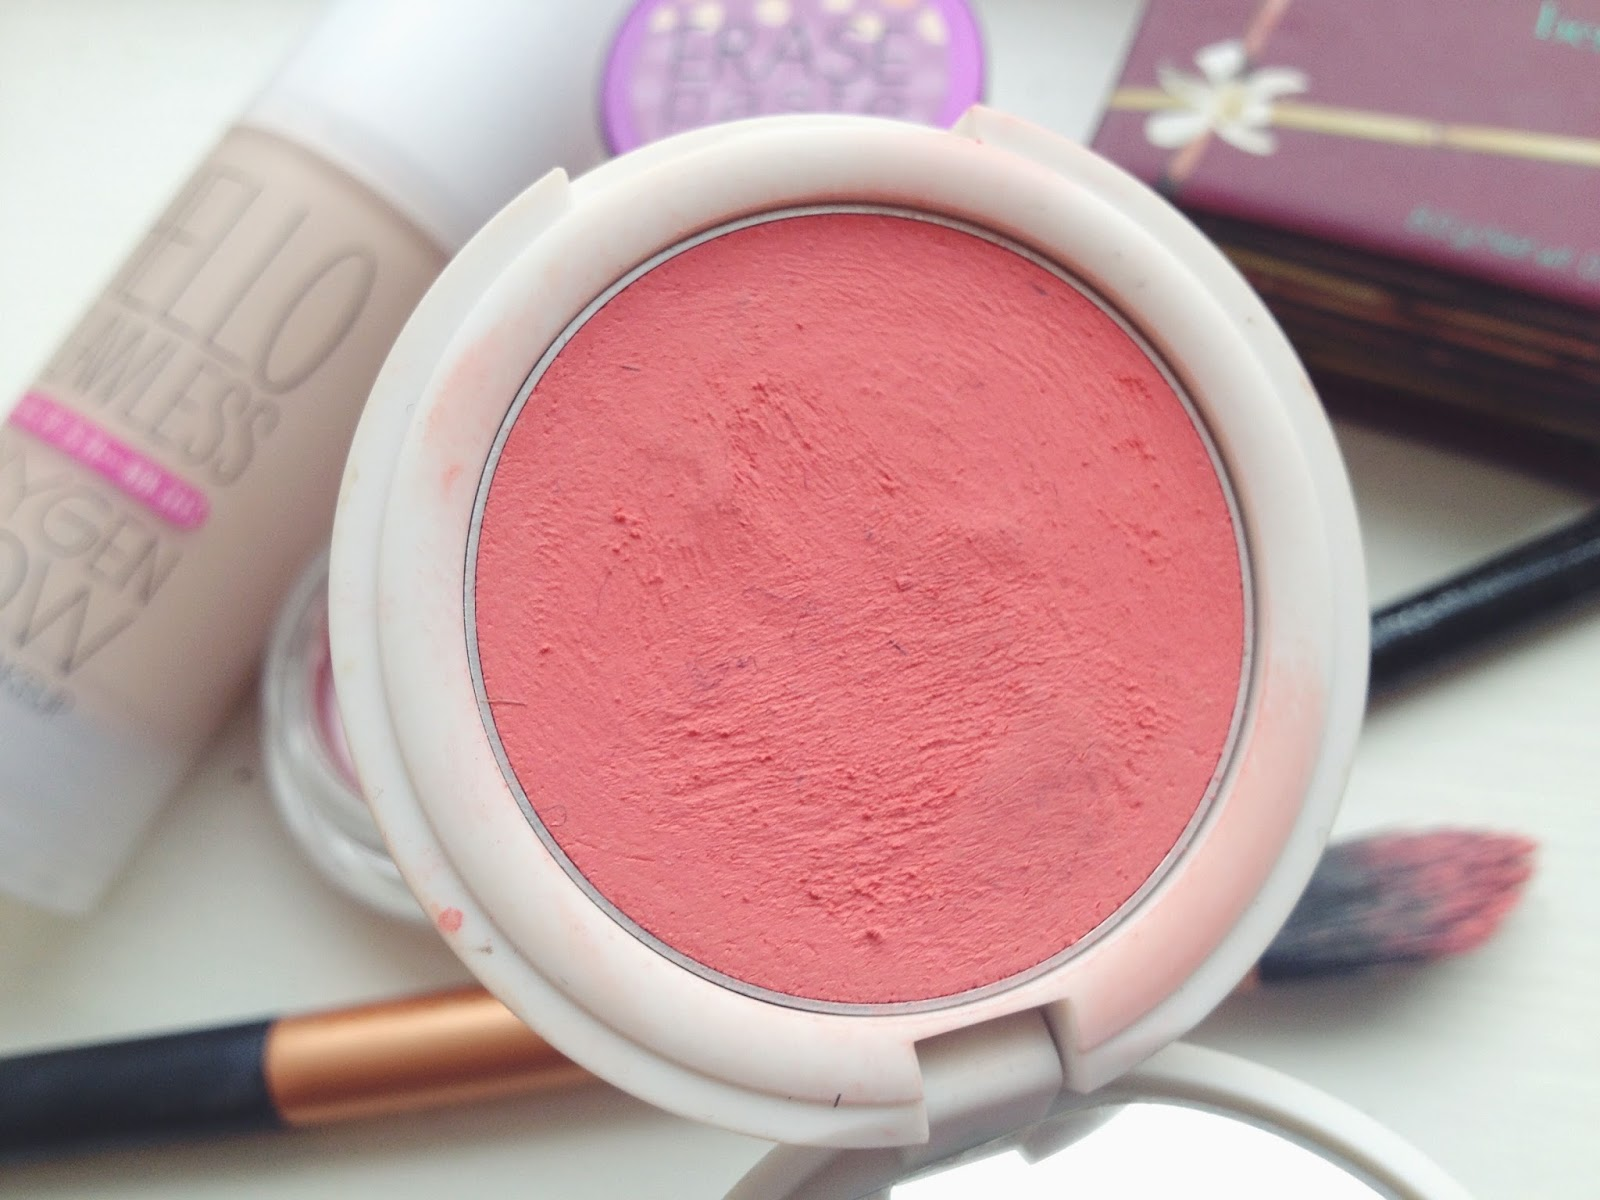 topshop blush review arnotts